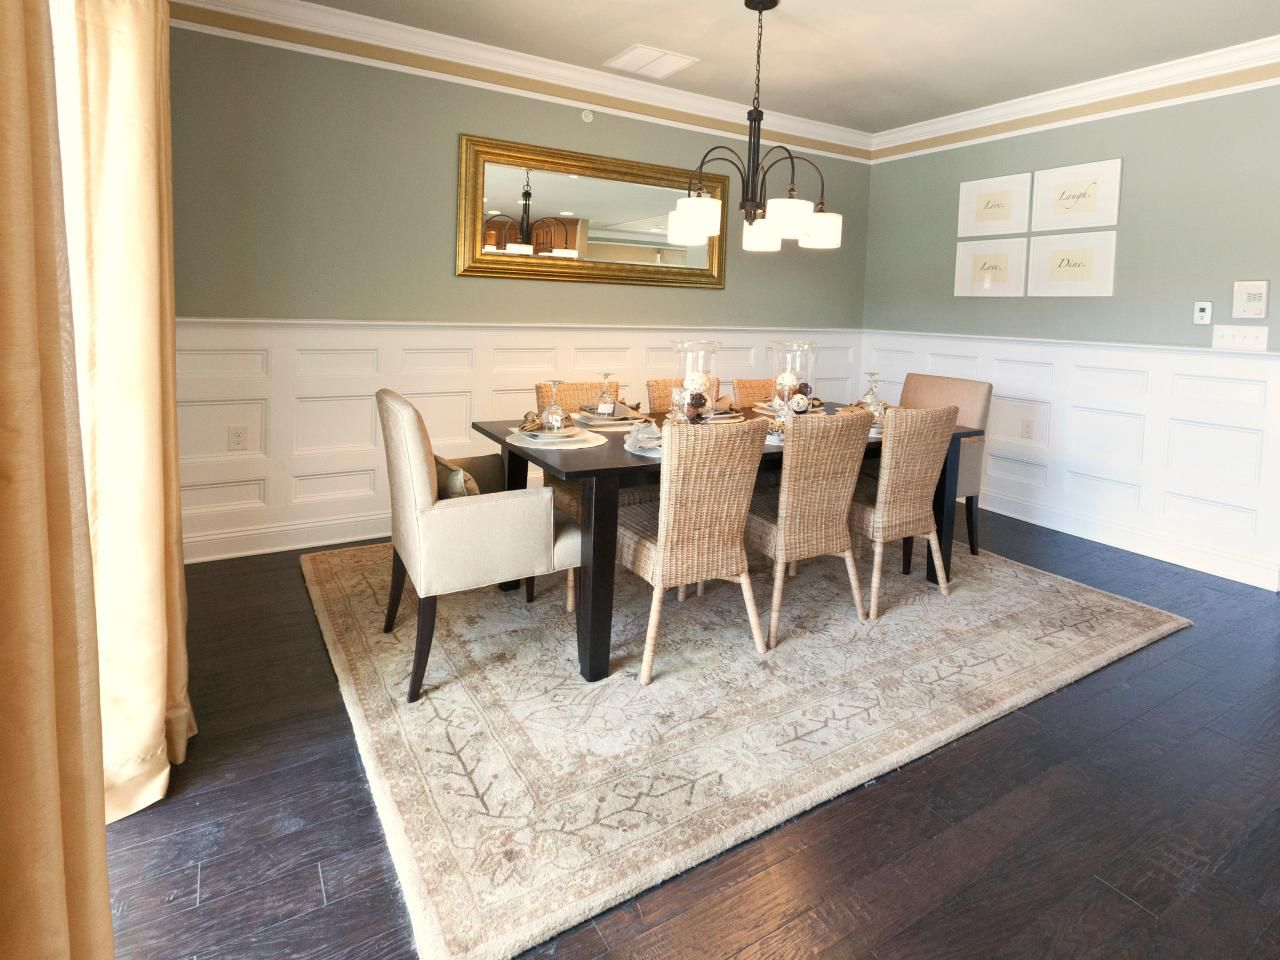 White Crown Molding And Wainscoting Give An Air Of Formality To This Sage Green Dining Room A Neutral Area Rug Ties Together The Transitional Beige Chairs